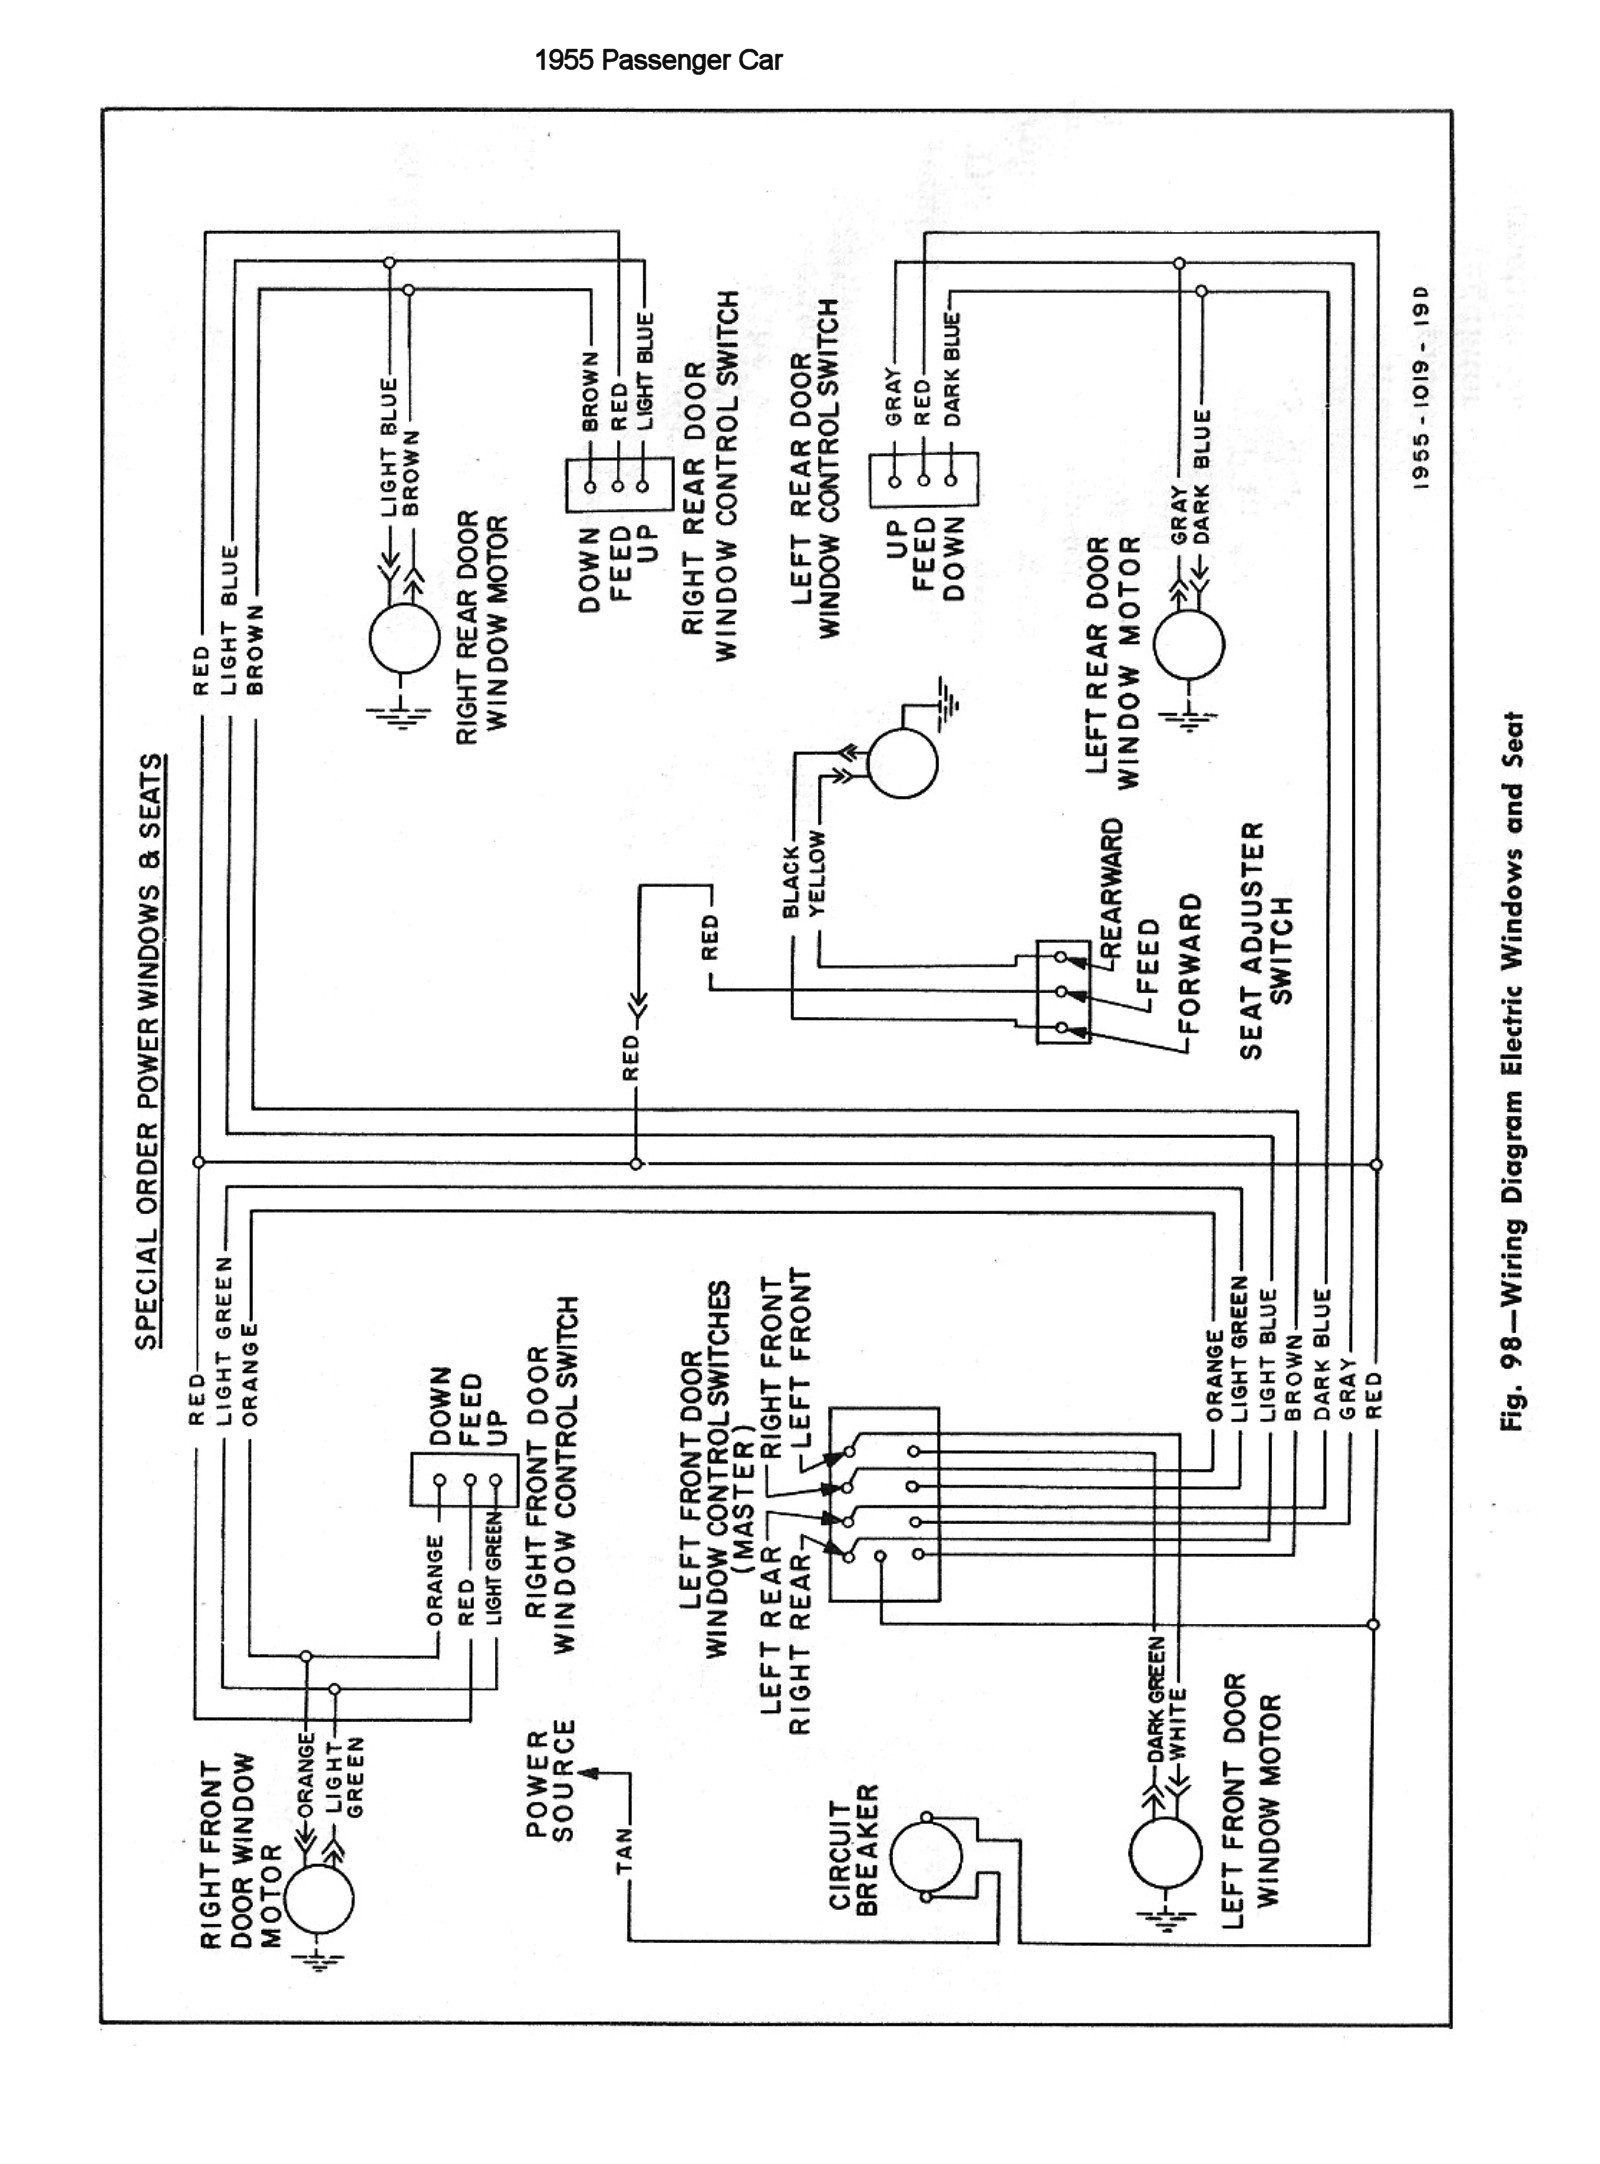 rear turn signal wiring diagram